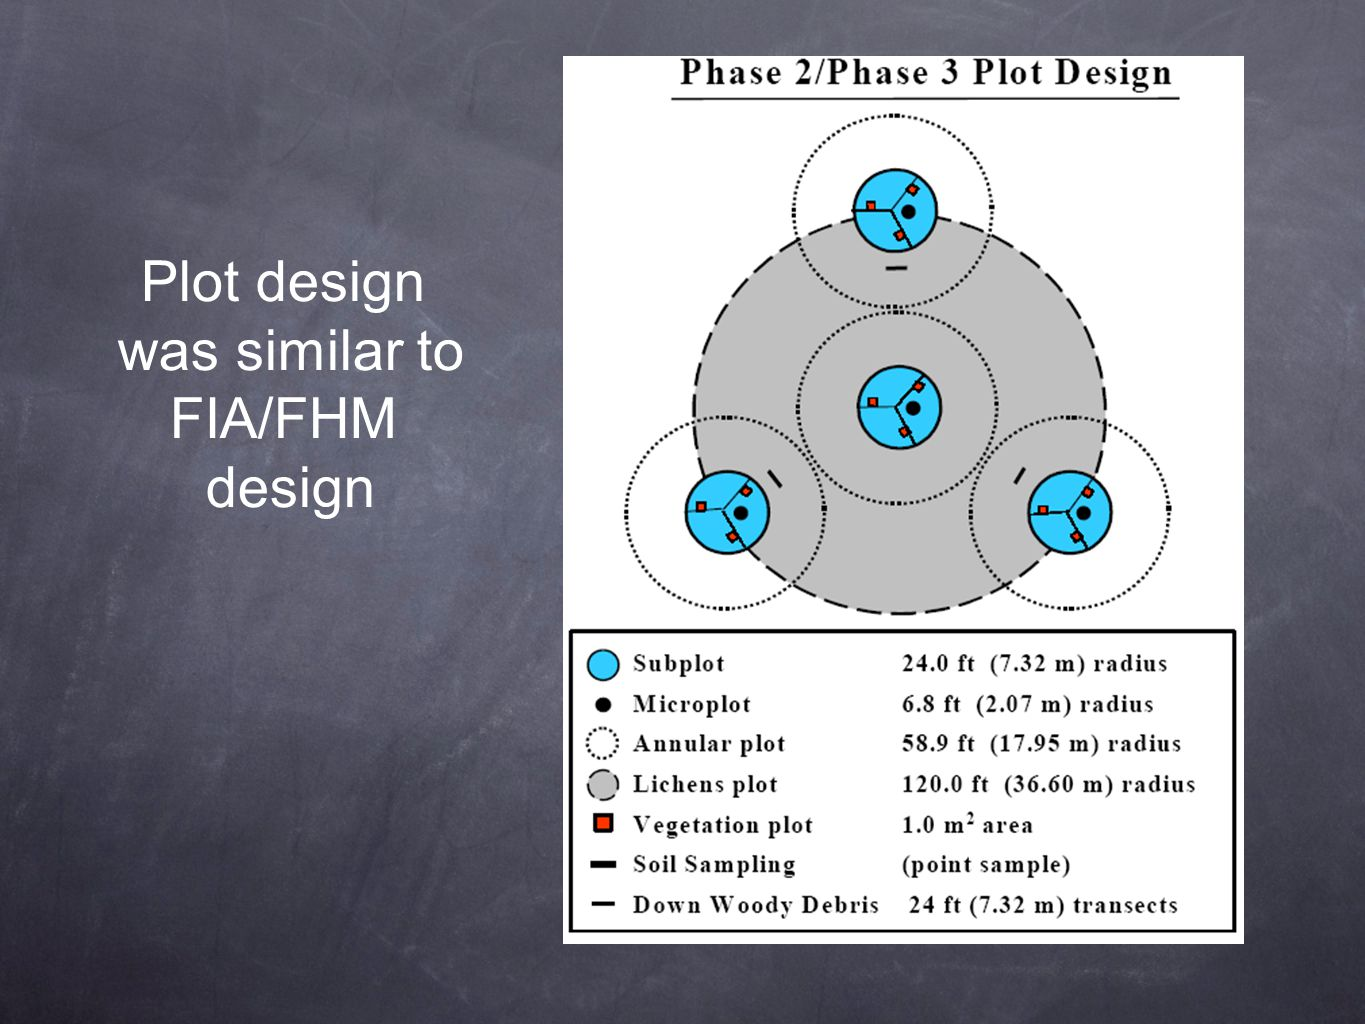 Plot design was similar to FIA/FHM design